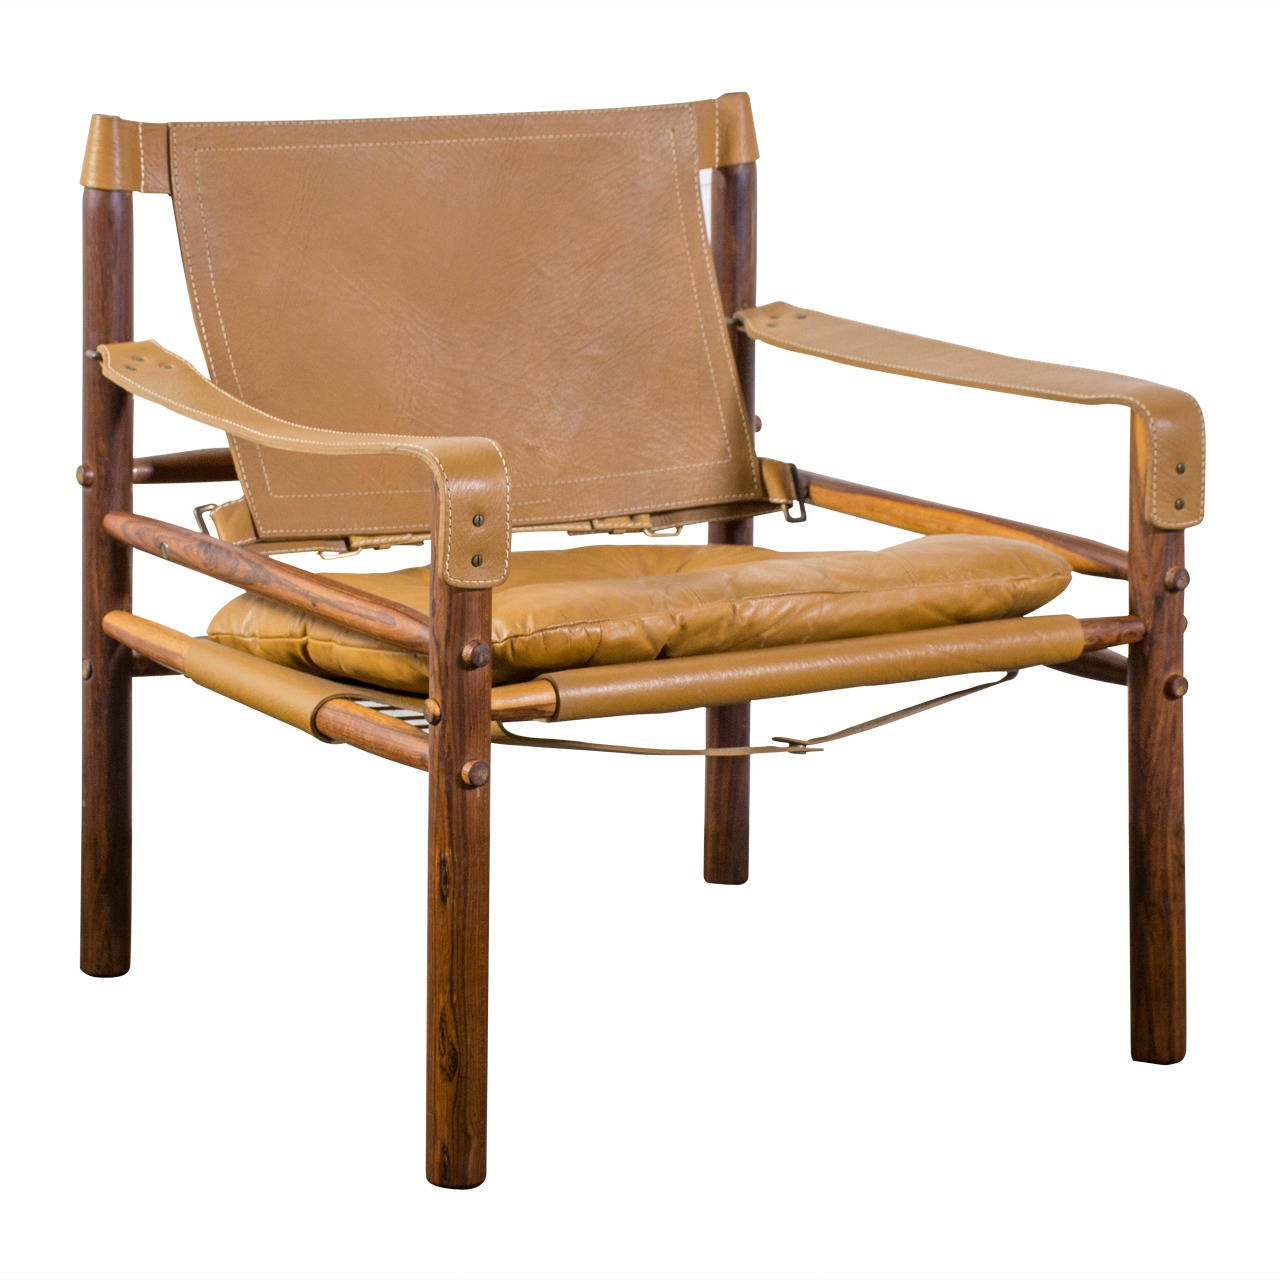 Safari Chair Vintage Safari Chair By Arne Norell At 1stdibs